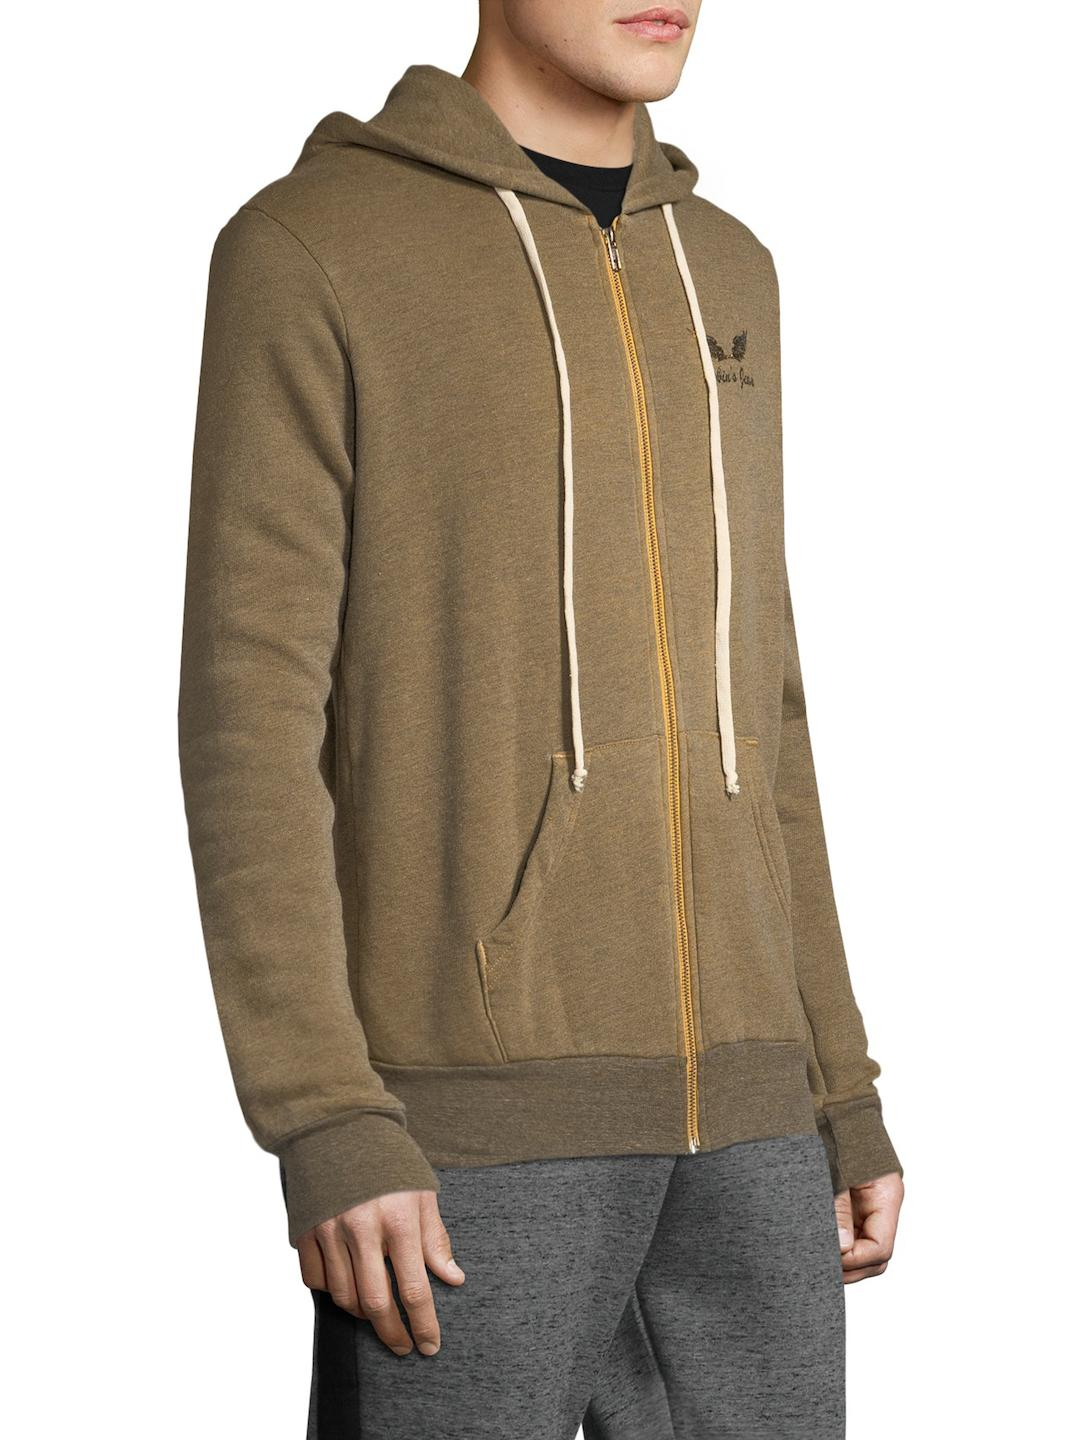 Robin's Jean Synthetic Drawn Wings Hood Jacket in Khaki (Natural) for Men